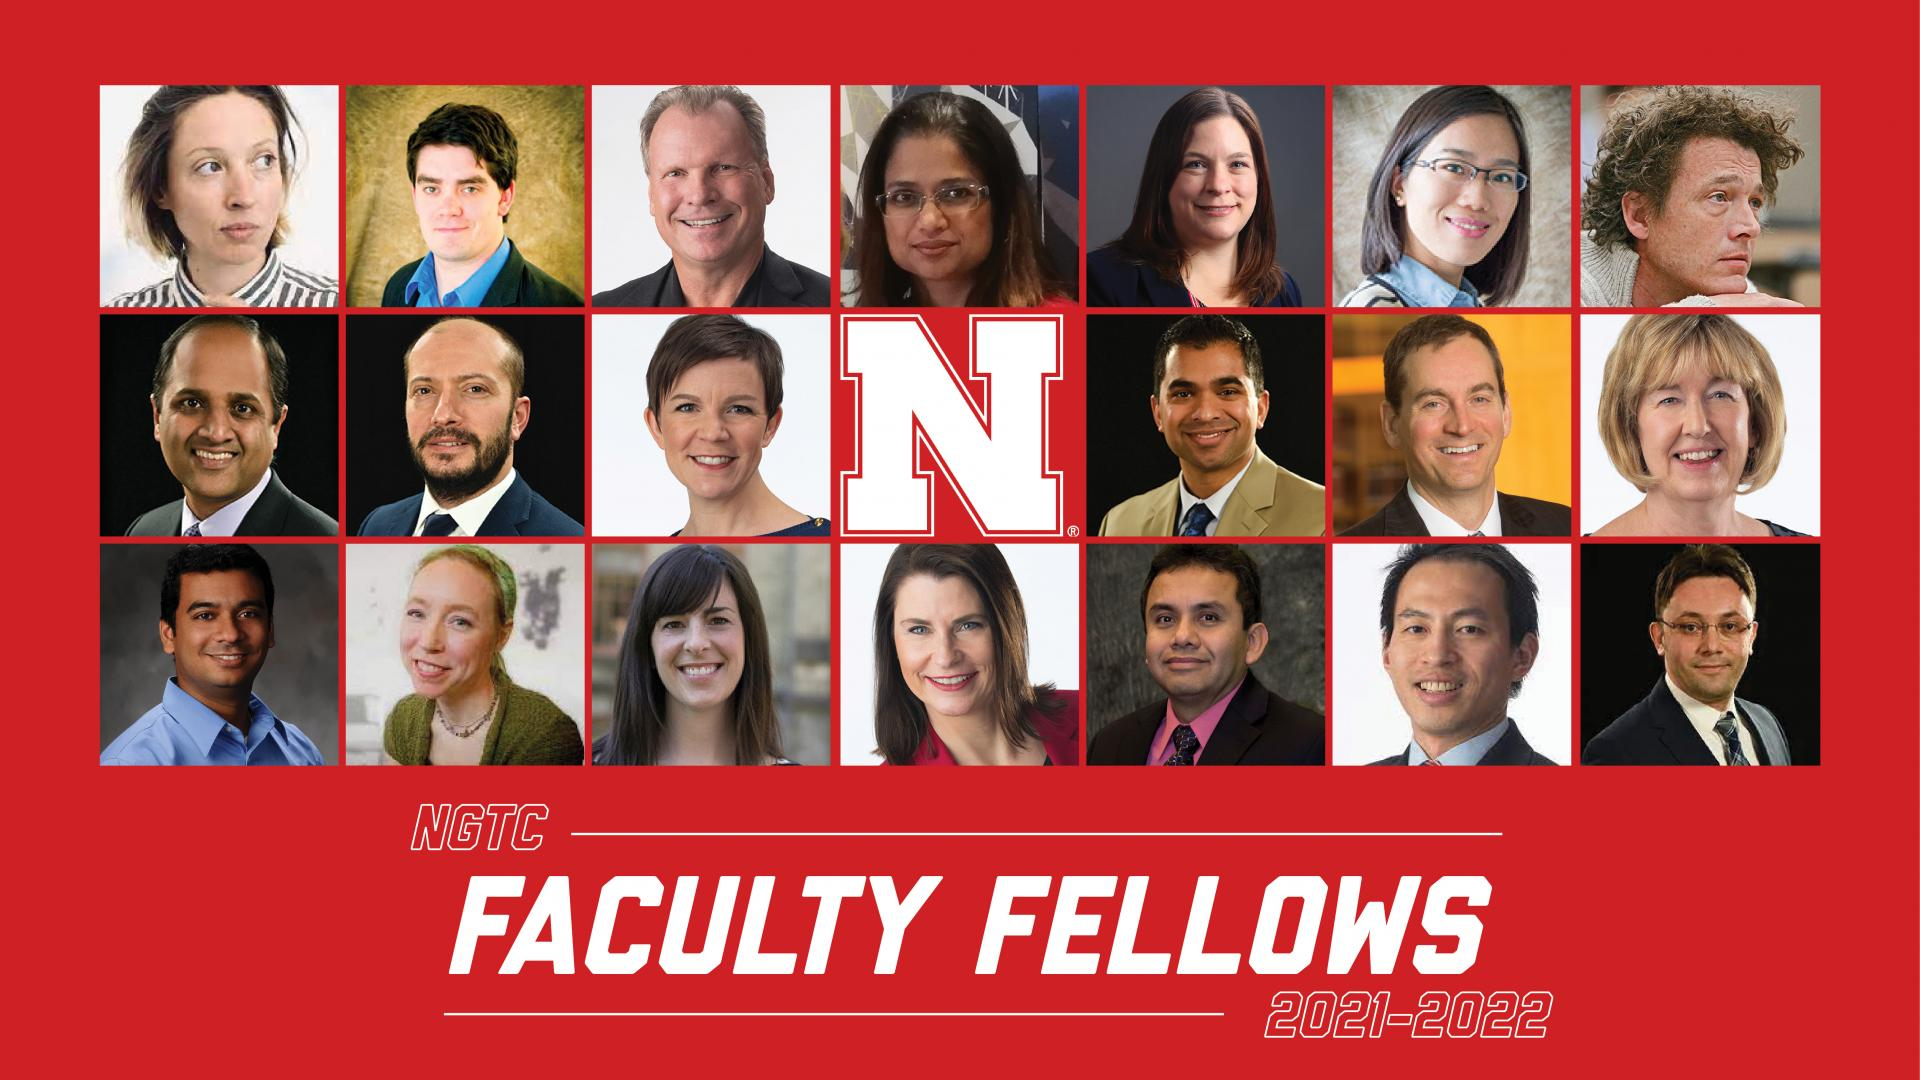 Lockup of 20 faculty fellows at the Nebraska Governance and Technology Center